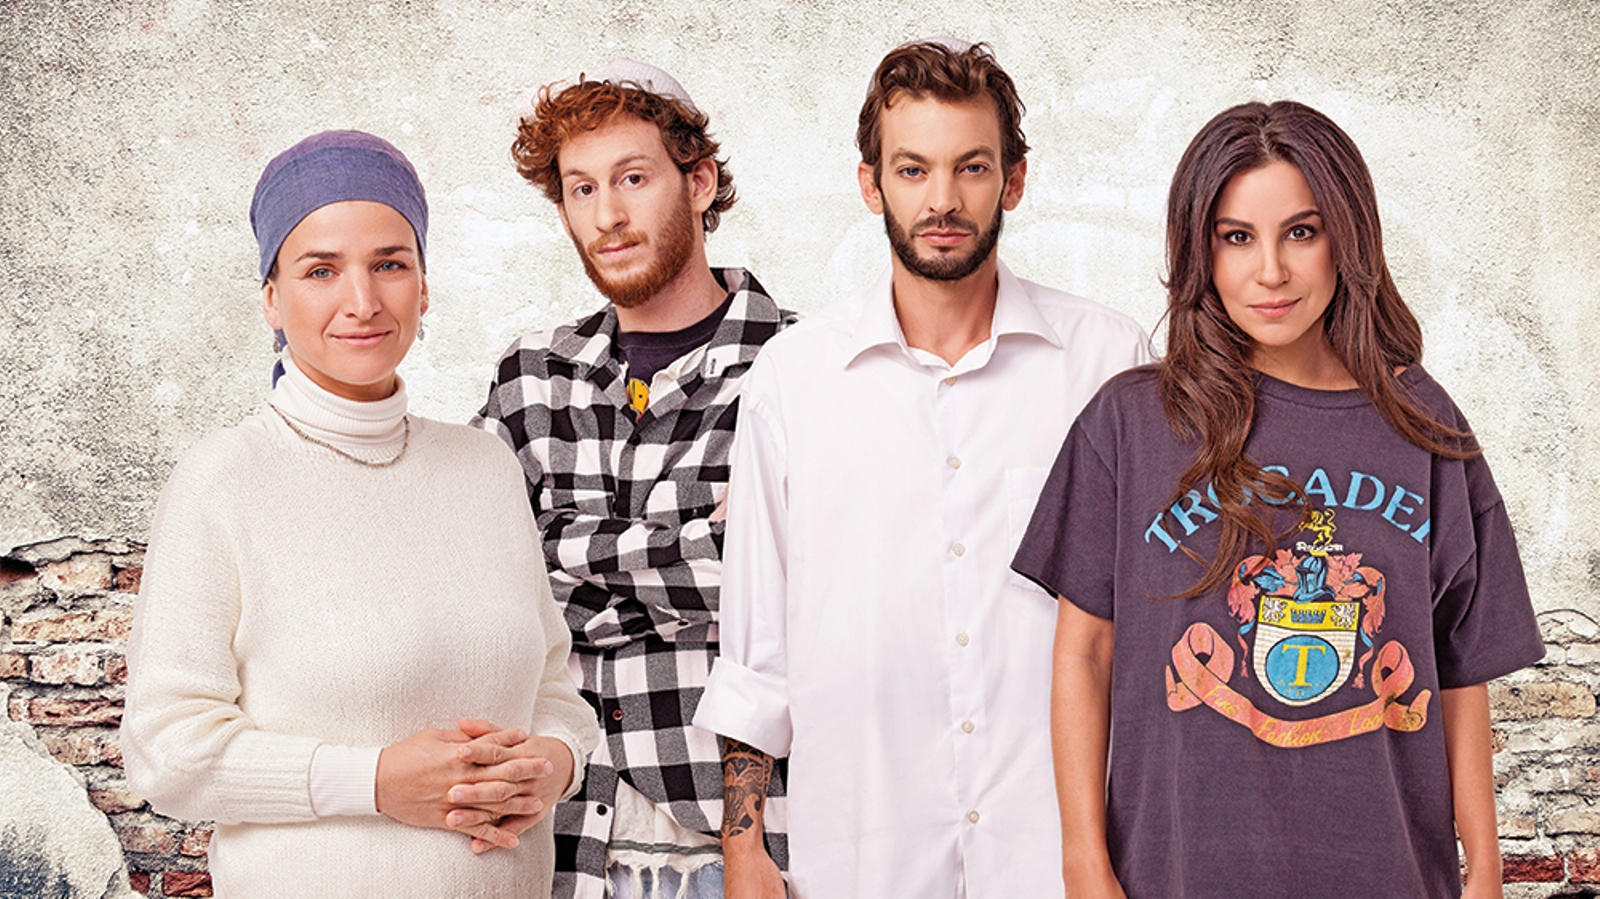 10 of the best Israeli TV shows you must watch - ISRAEL21c